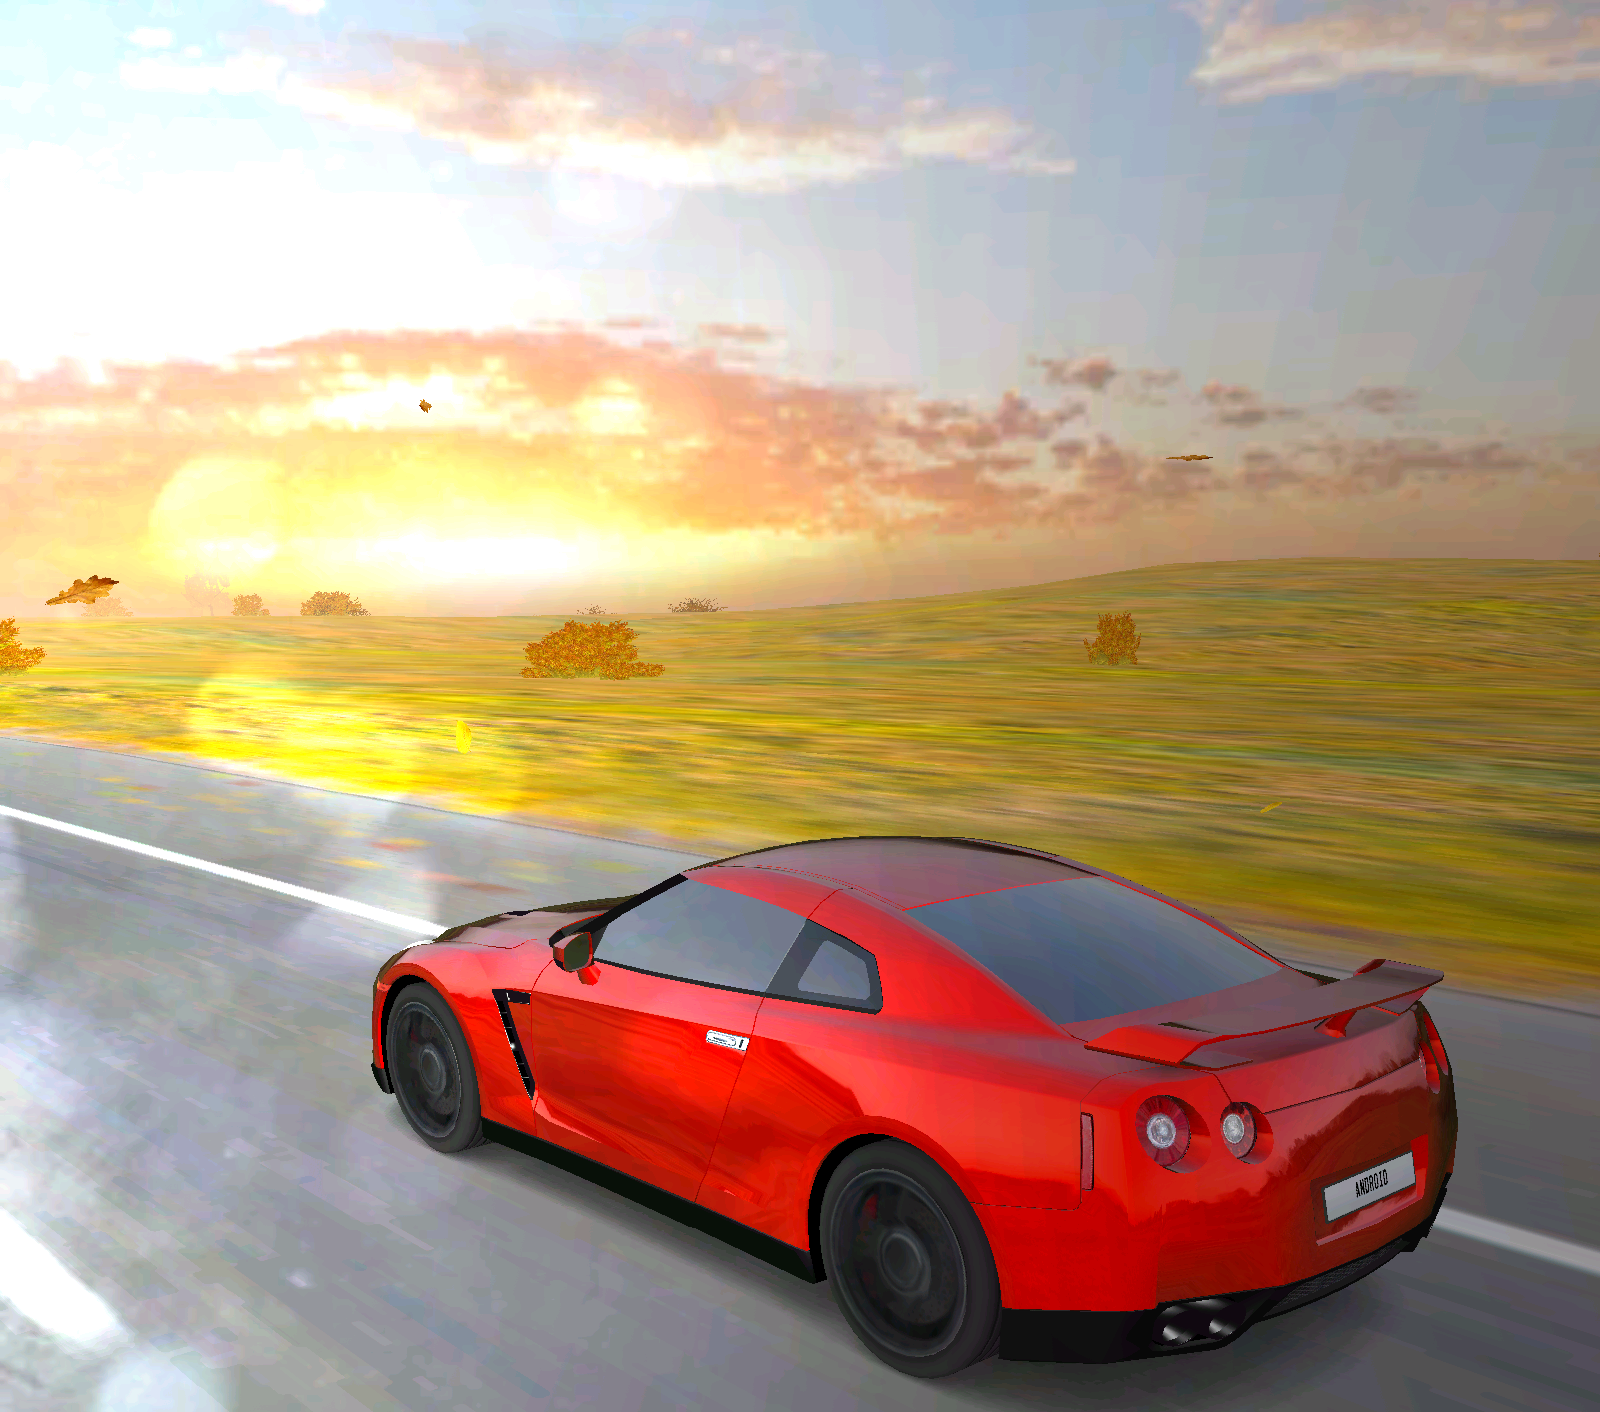 OpenGL ES 3.0 in Android 4.3 — compression of textures of ETC2